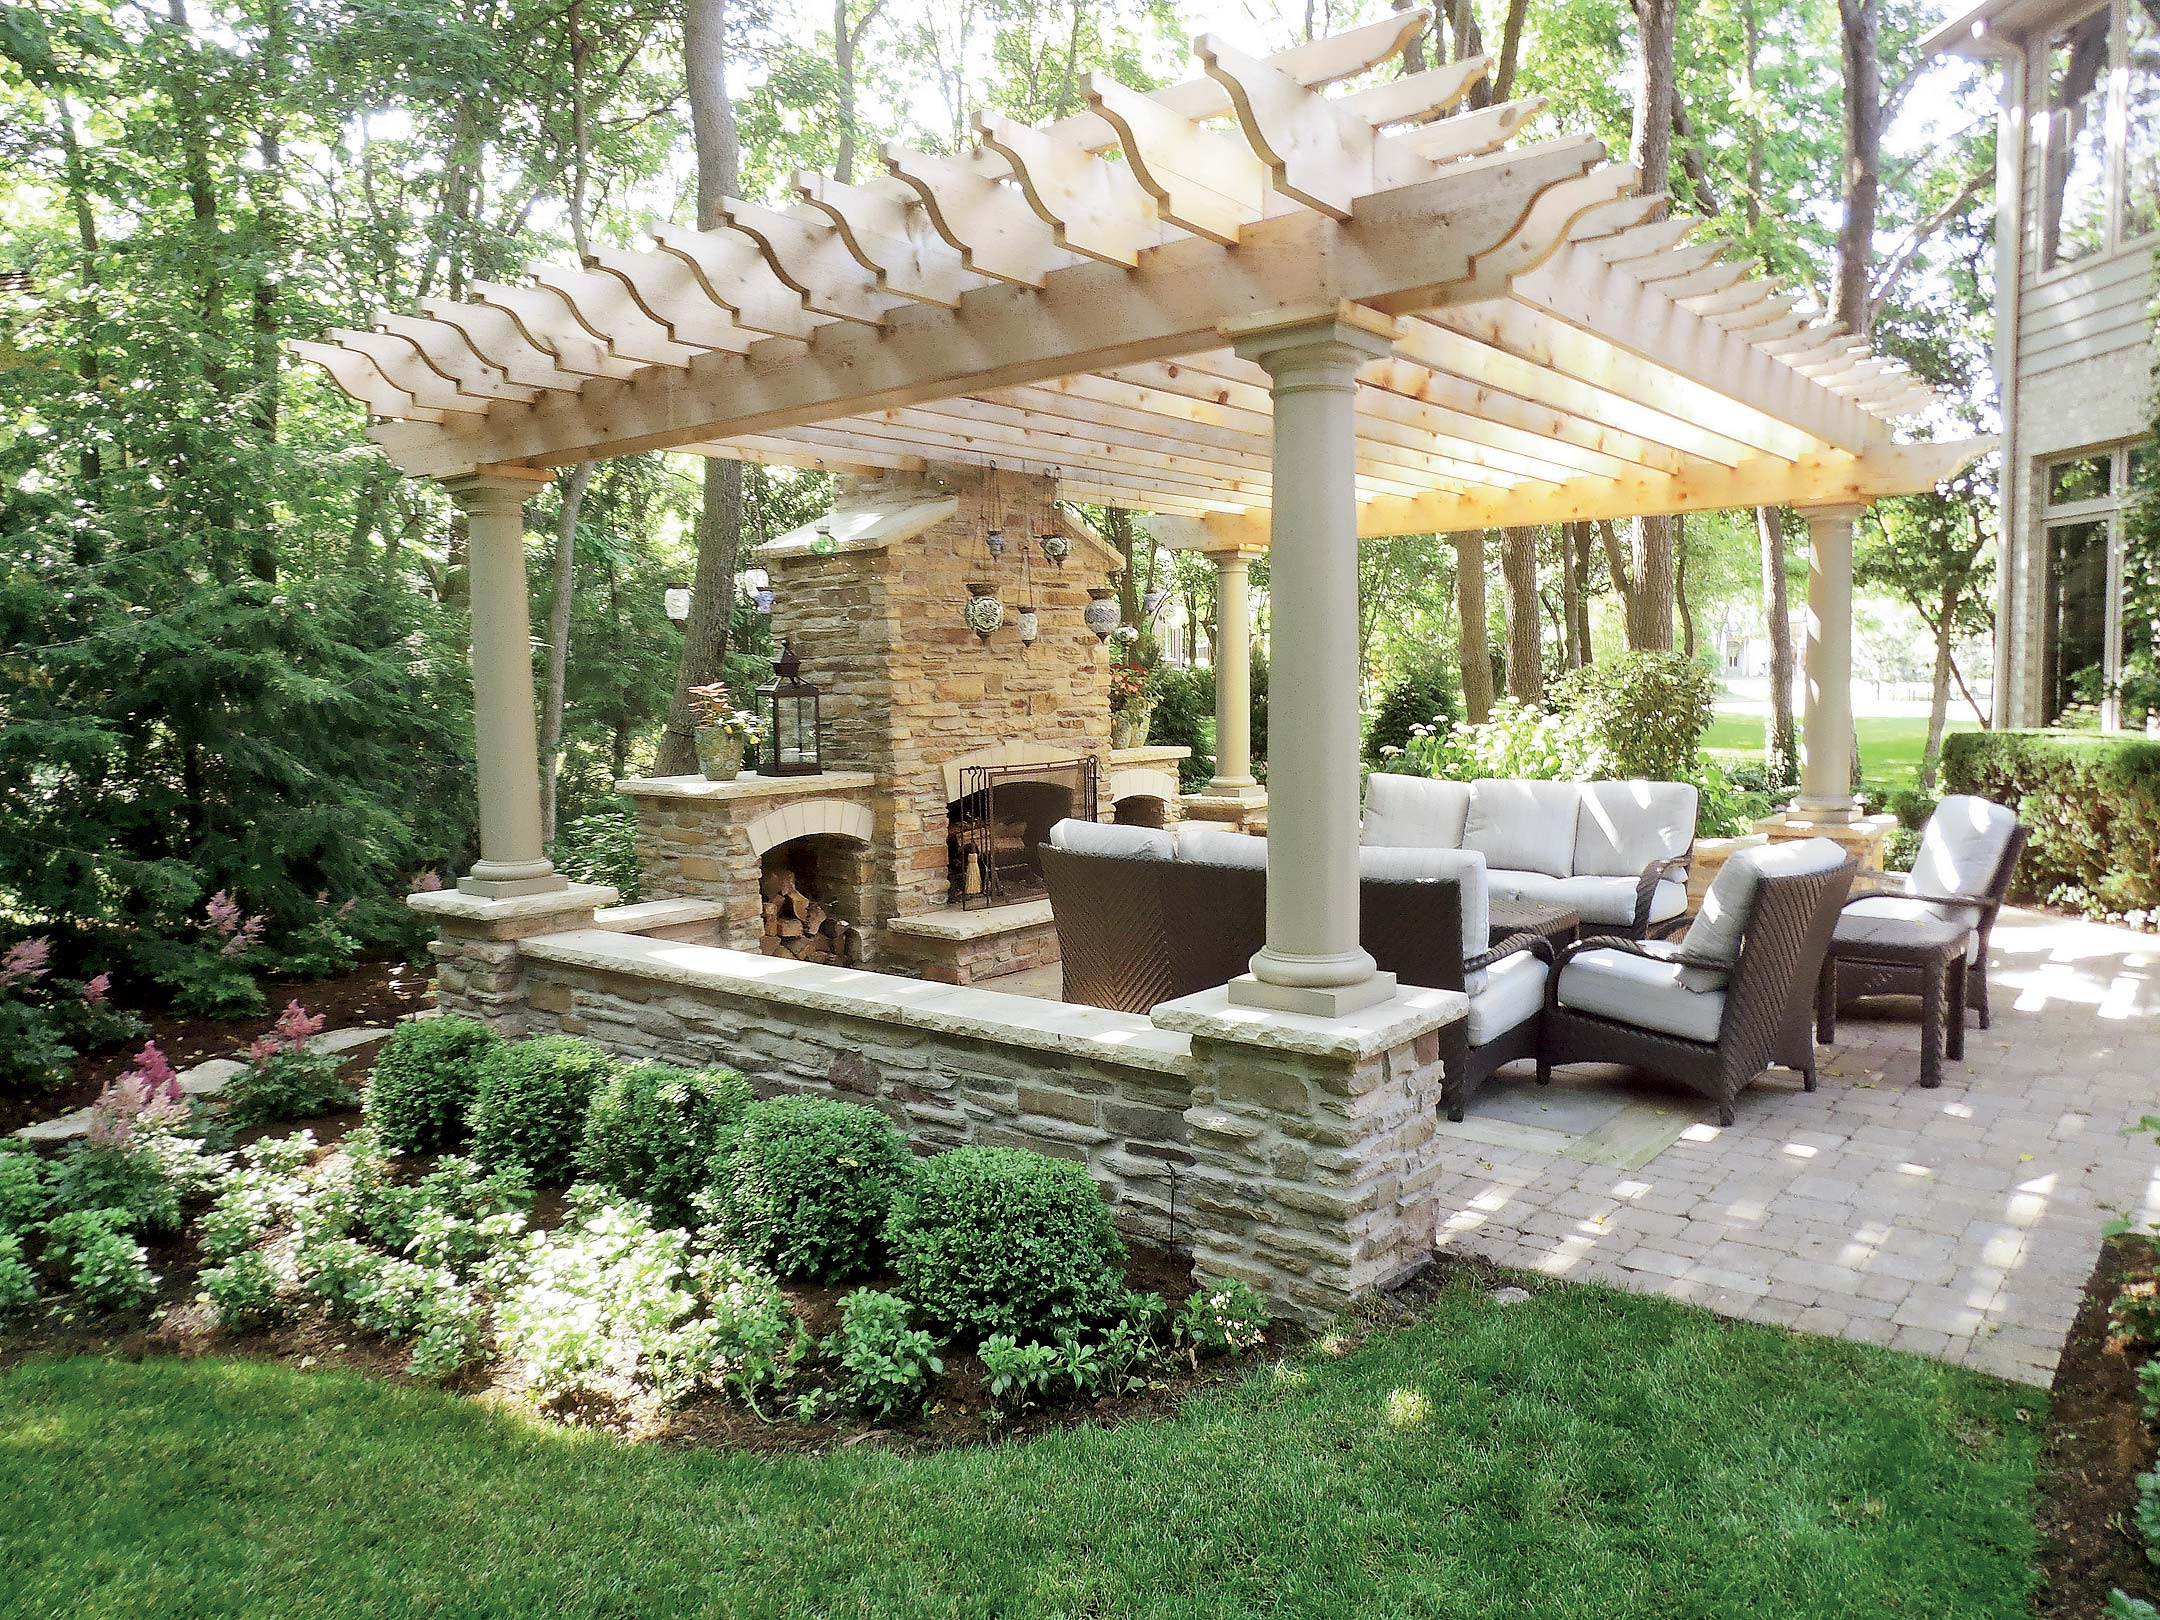 Backyard structures for entertaining for Outdoor spaces landscaping